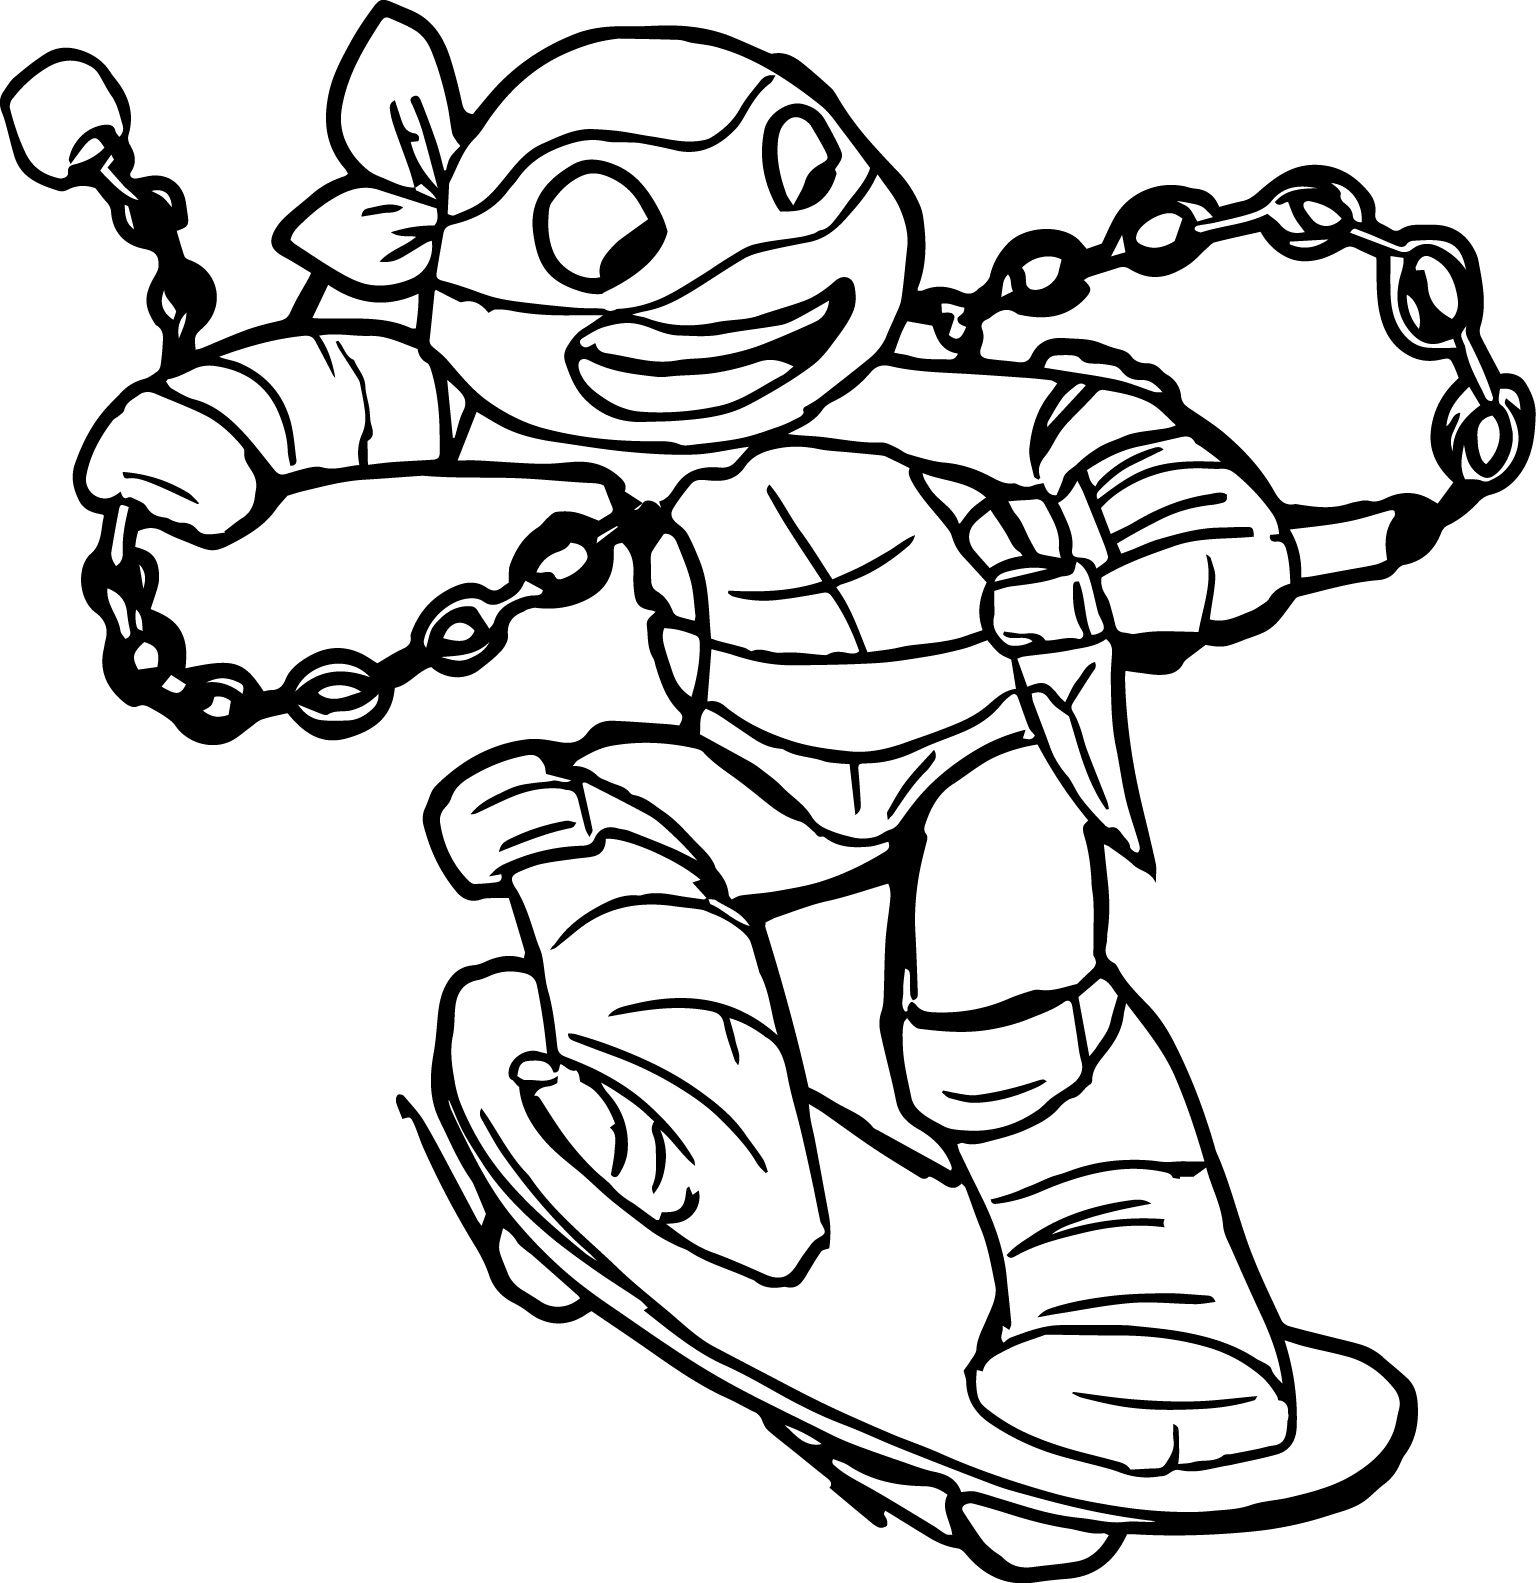 Ninja Turtles Coloring Pages To Print